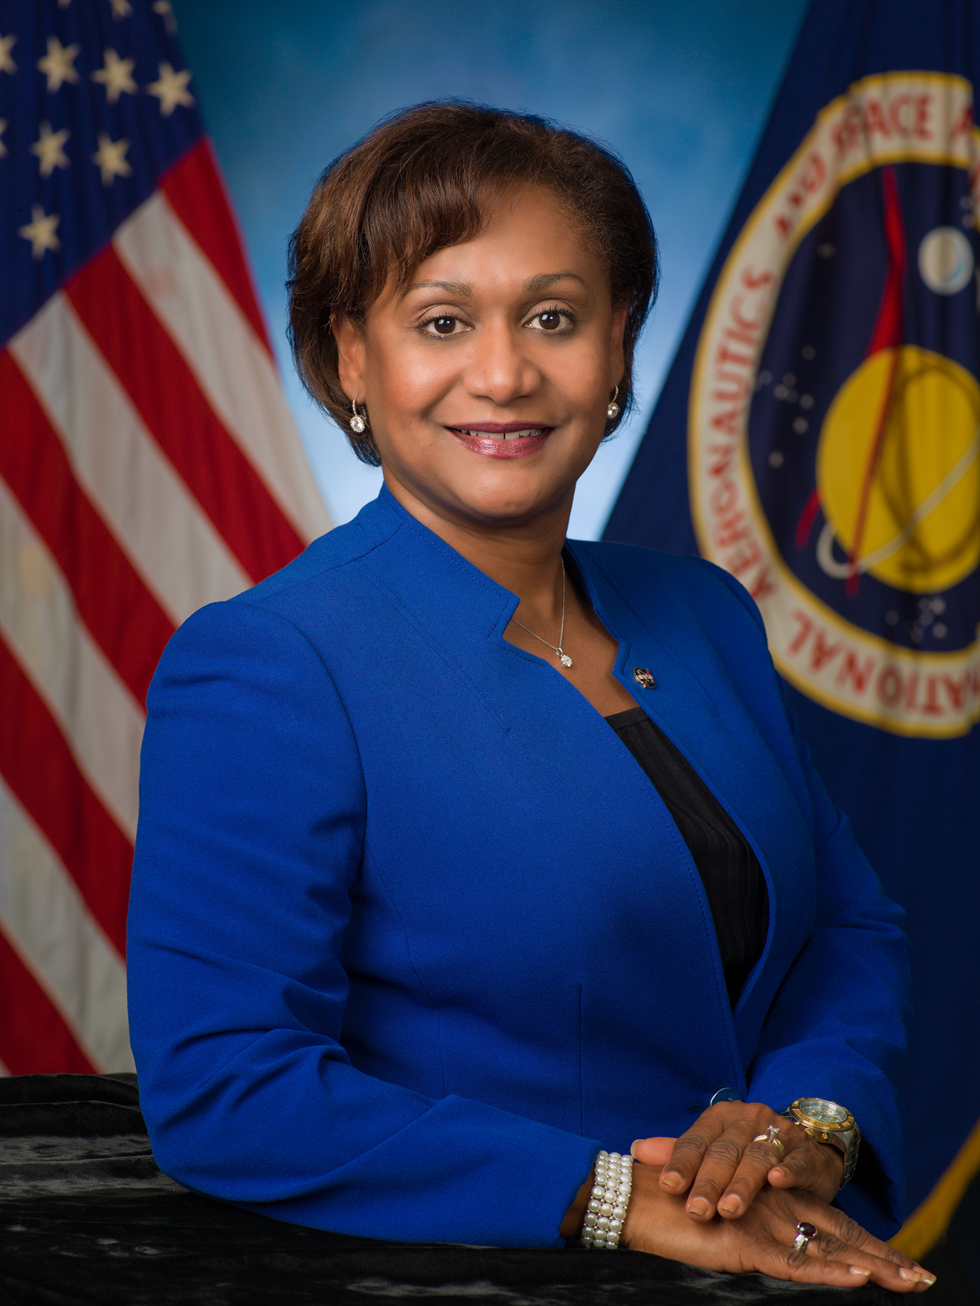 Vanessa Wyche has been named the next deputy director of NASA's Johnson Space Center, effective immediately. Image Credit: NASA